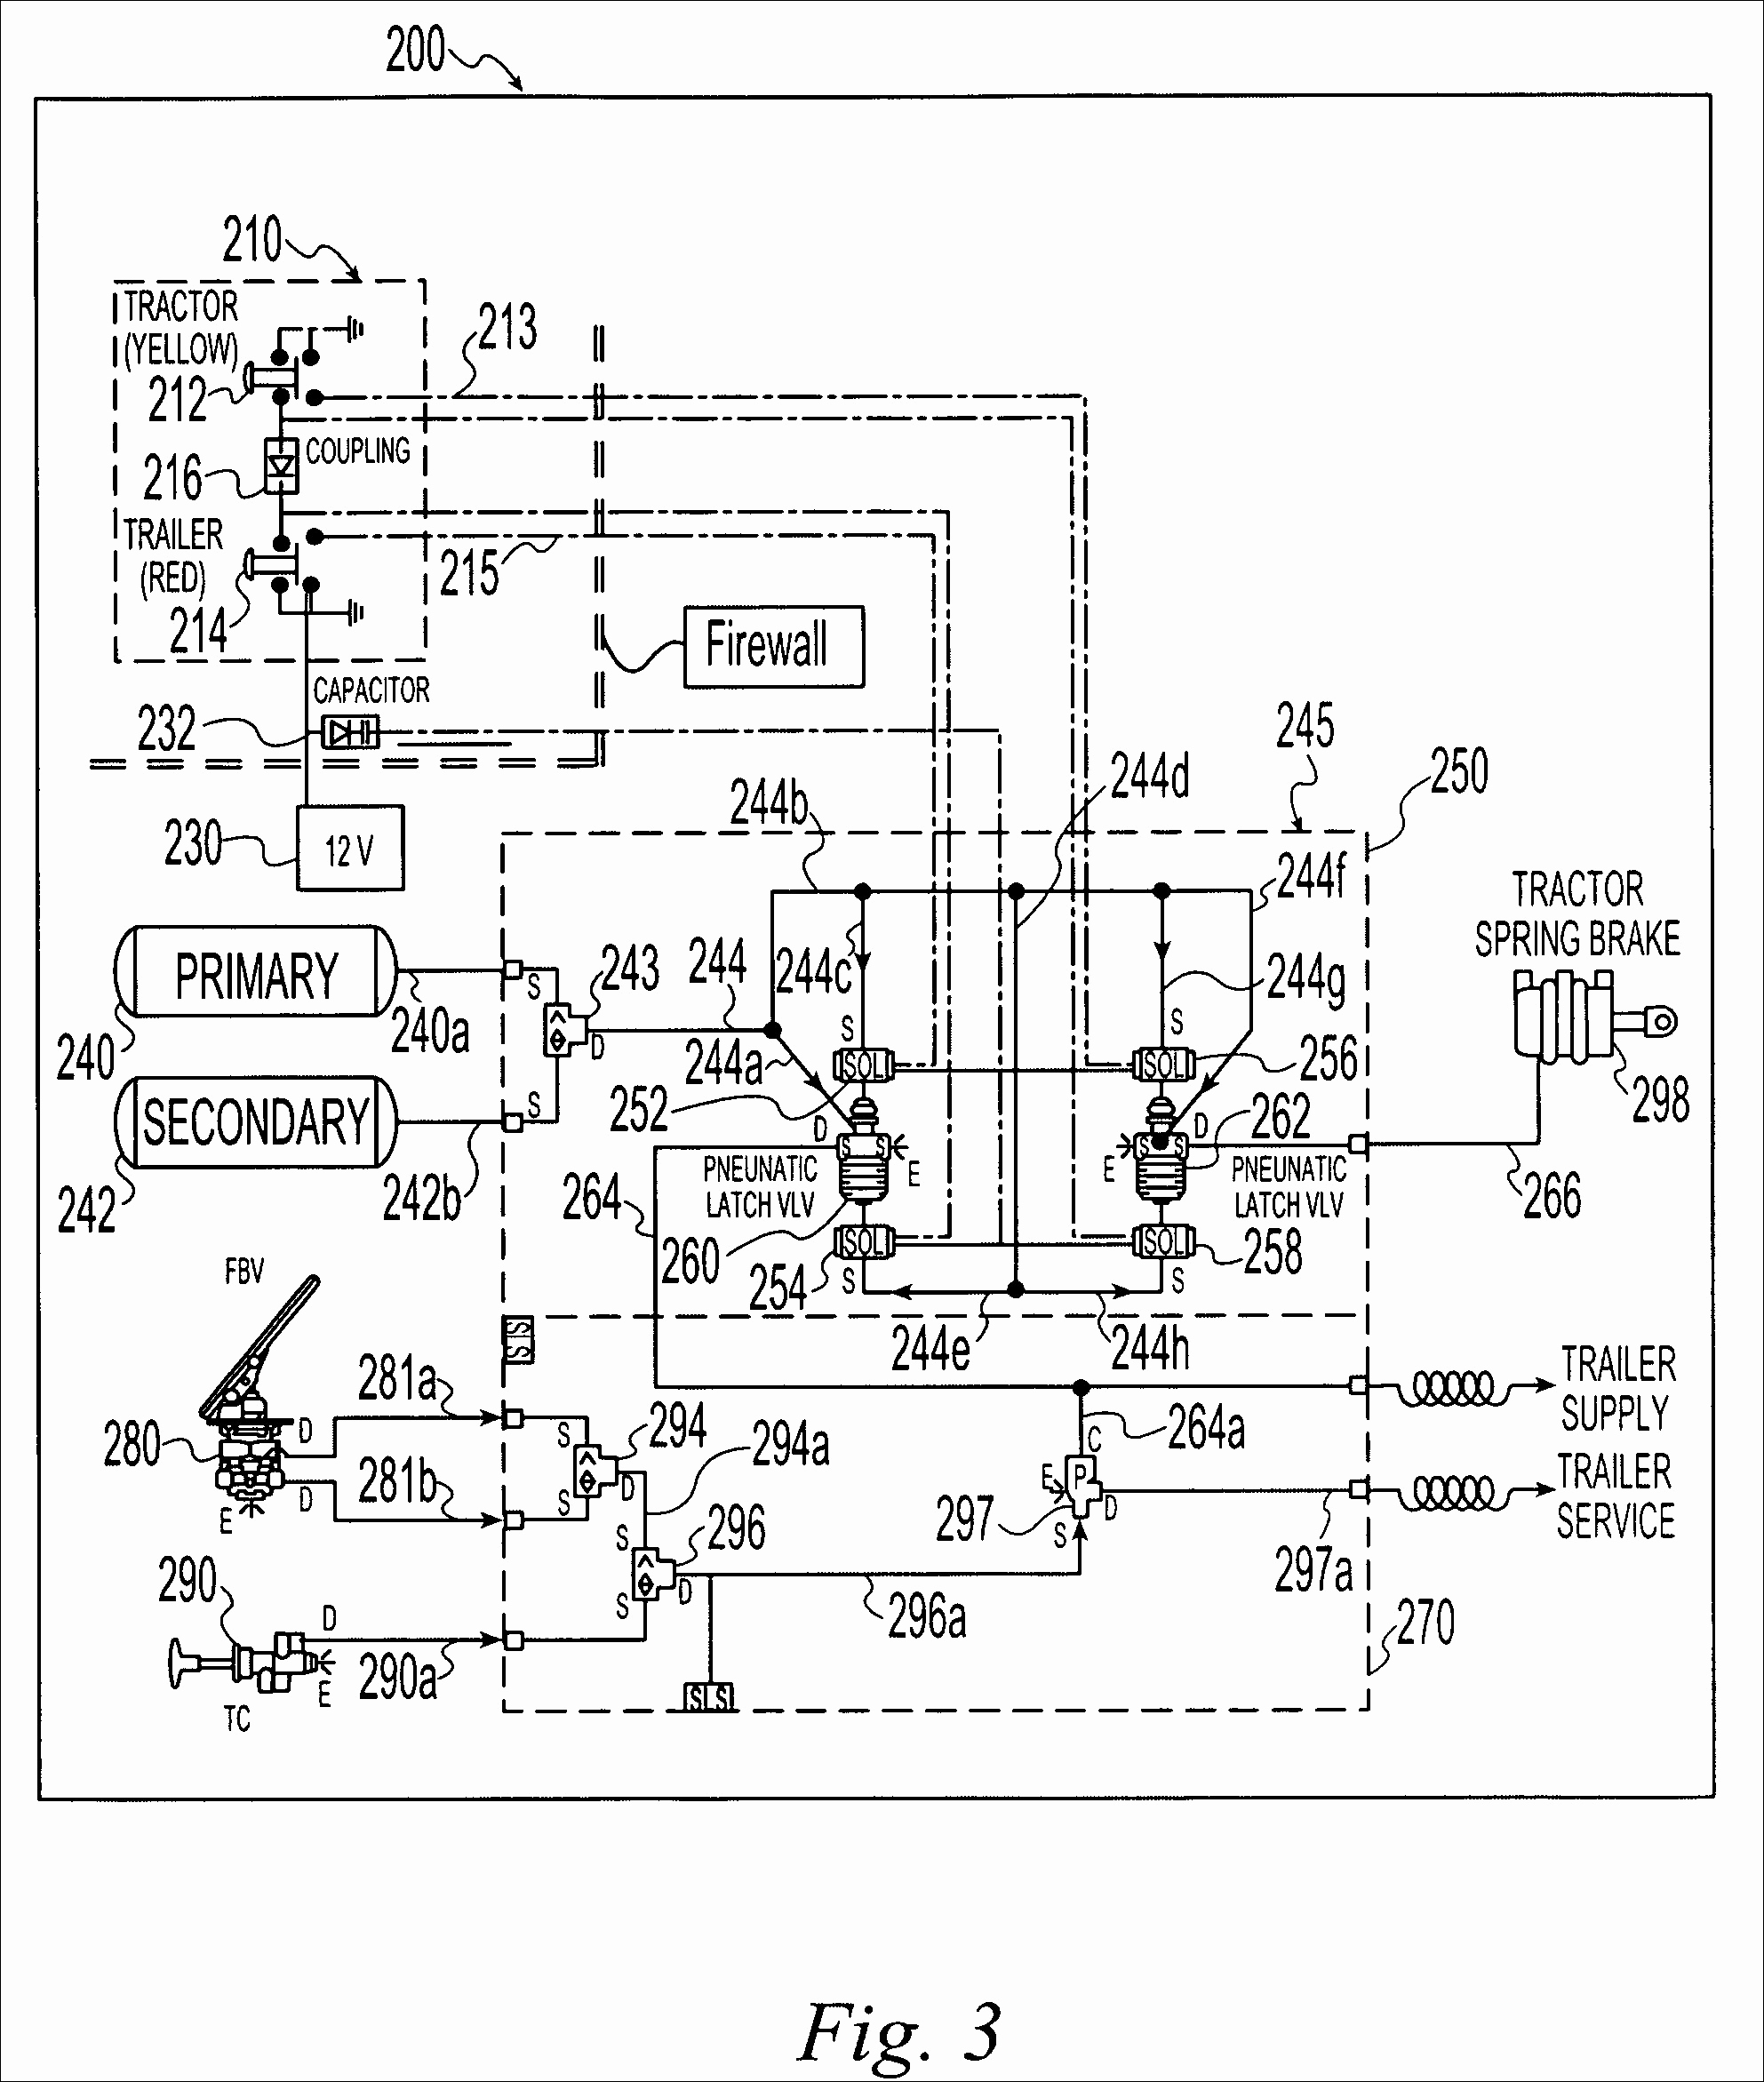 Collection Of Chevy Silverado Trailer Wiring Diagram Sample